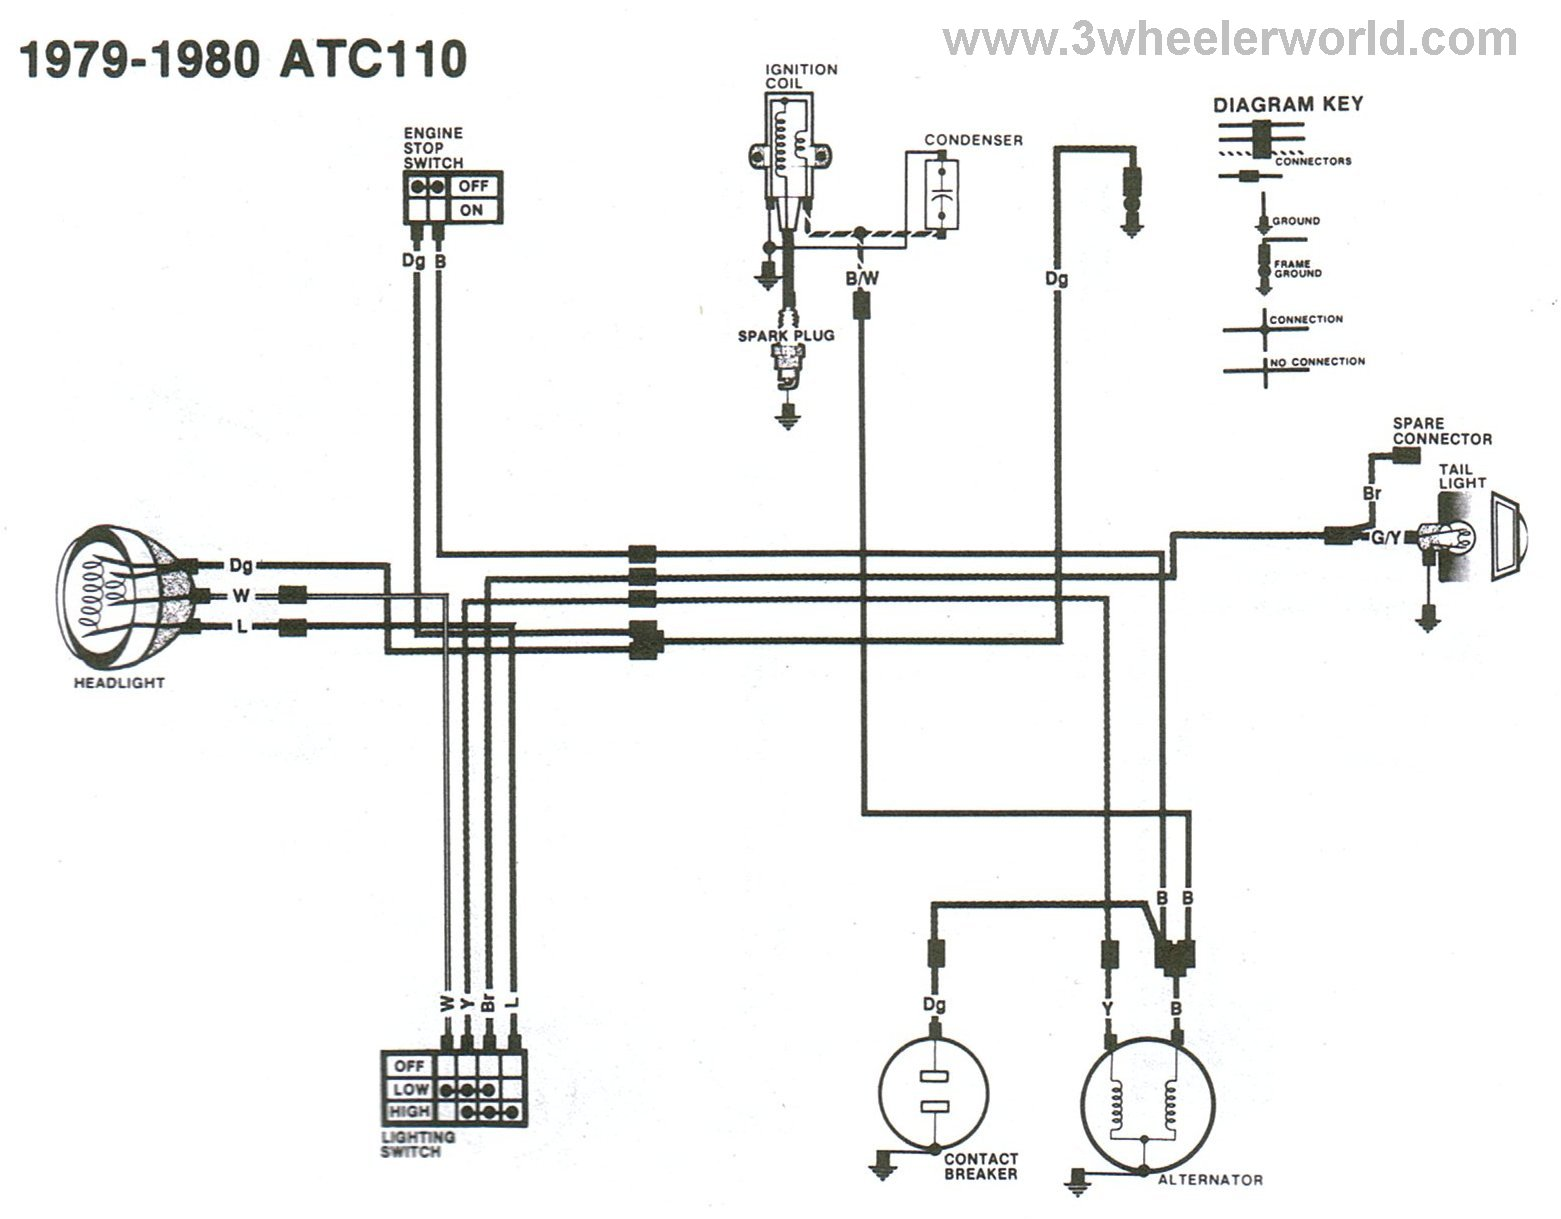 [DIAGRAM_4PO]  Honda 4 Wheeler Wiring - Whirlpool Ice Maker Wiring Diagram for Wiring  Diagram Schematics | Honda 4 Wheeler Wiring Schematic |  | Wiring Diagram Schematics